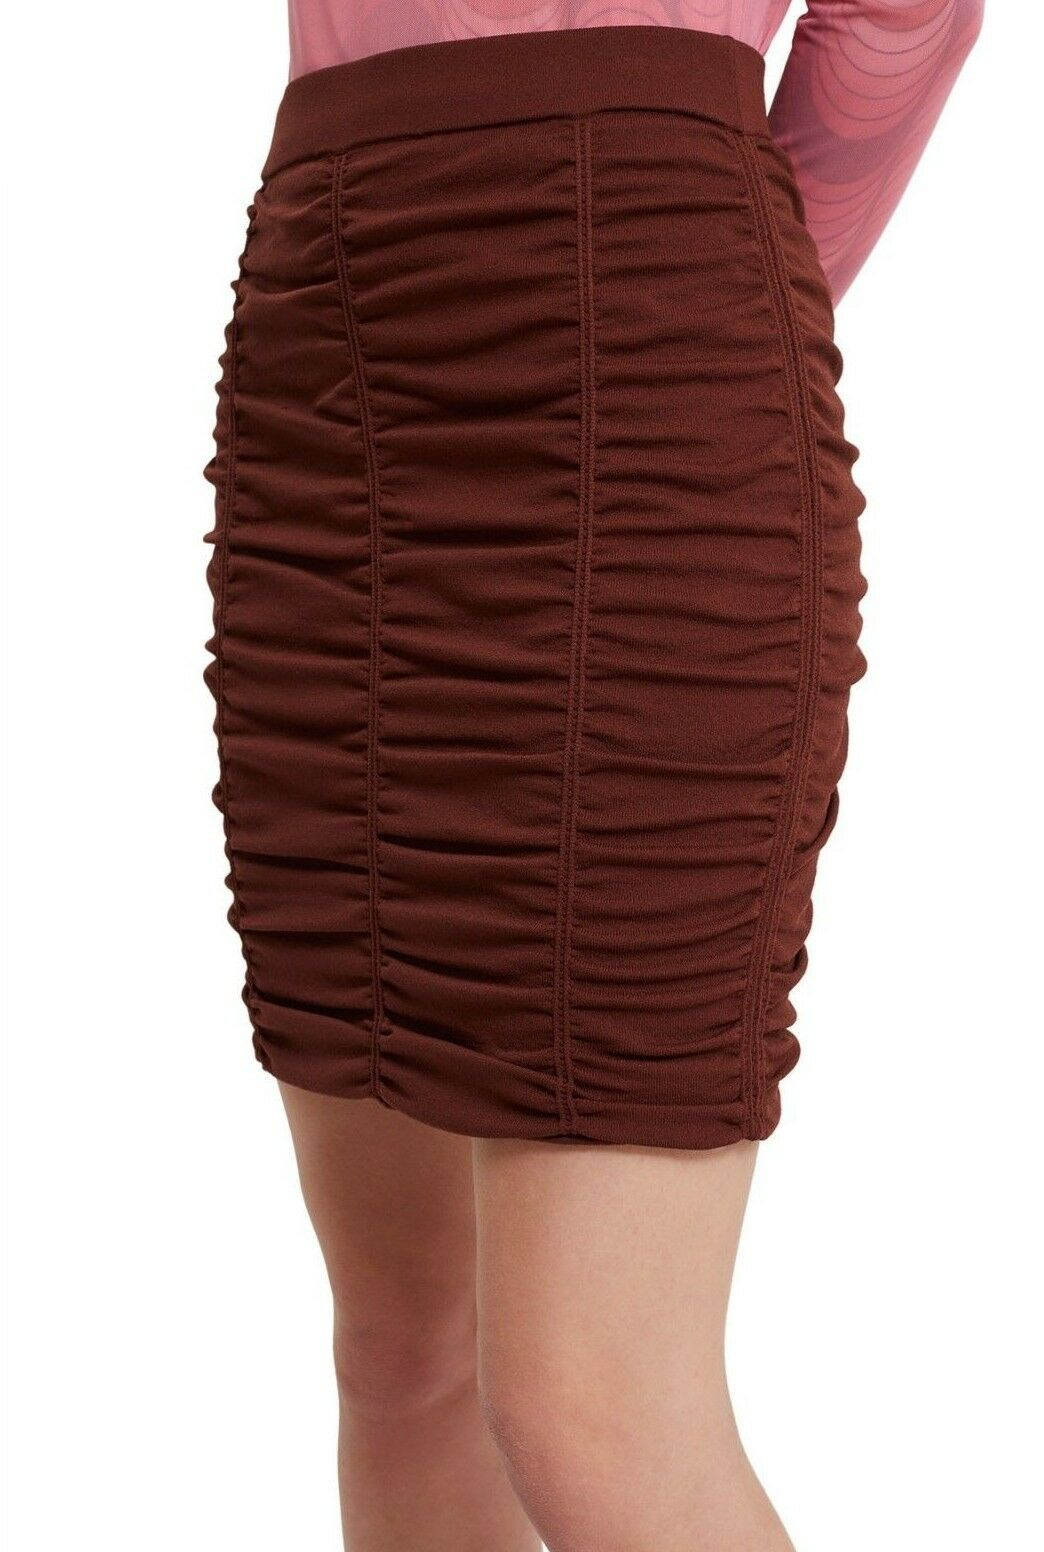 OPENING CEREMONY Maroon Fitted Stretch Ruche Skirt - M VGC